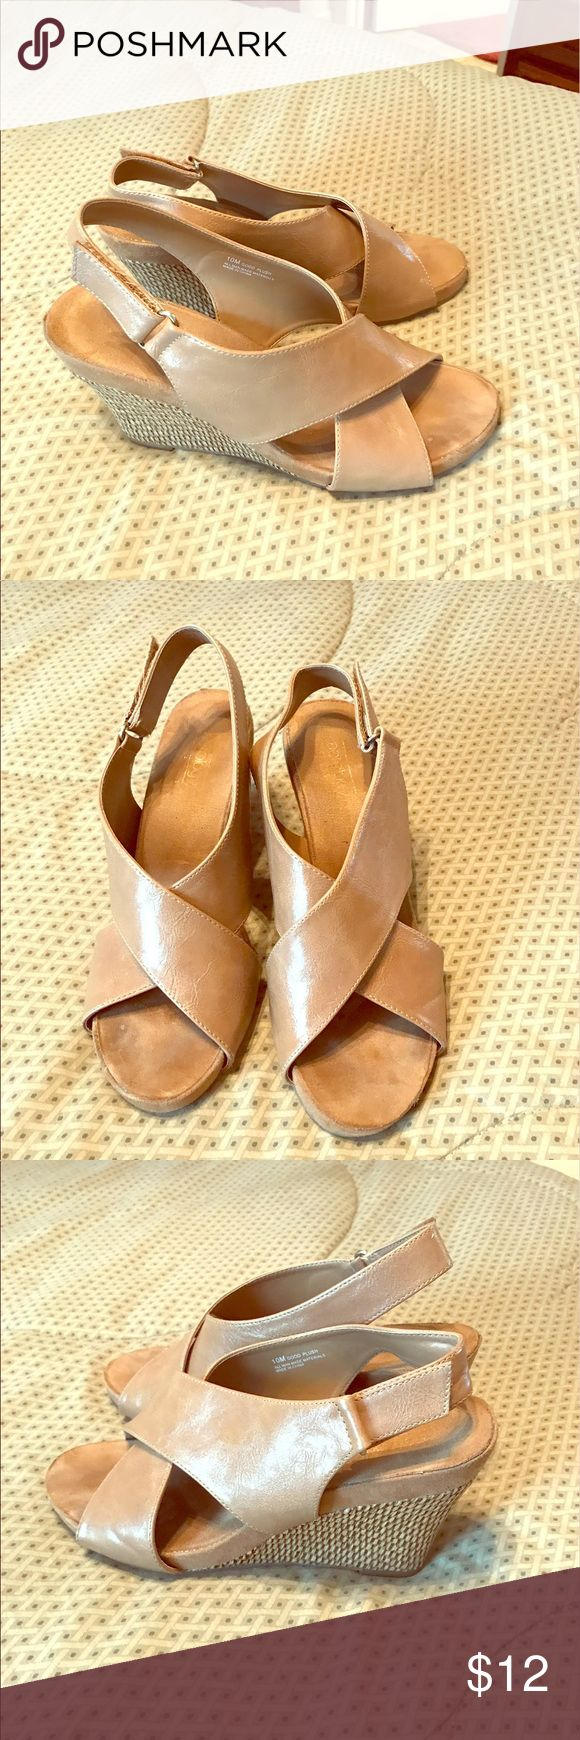 Ladies wedge sandals Tan wedge sandals, EUC with lots of life left! Bare Anthology Shoes Sandals